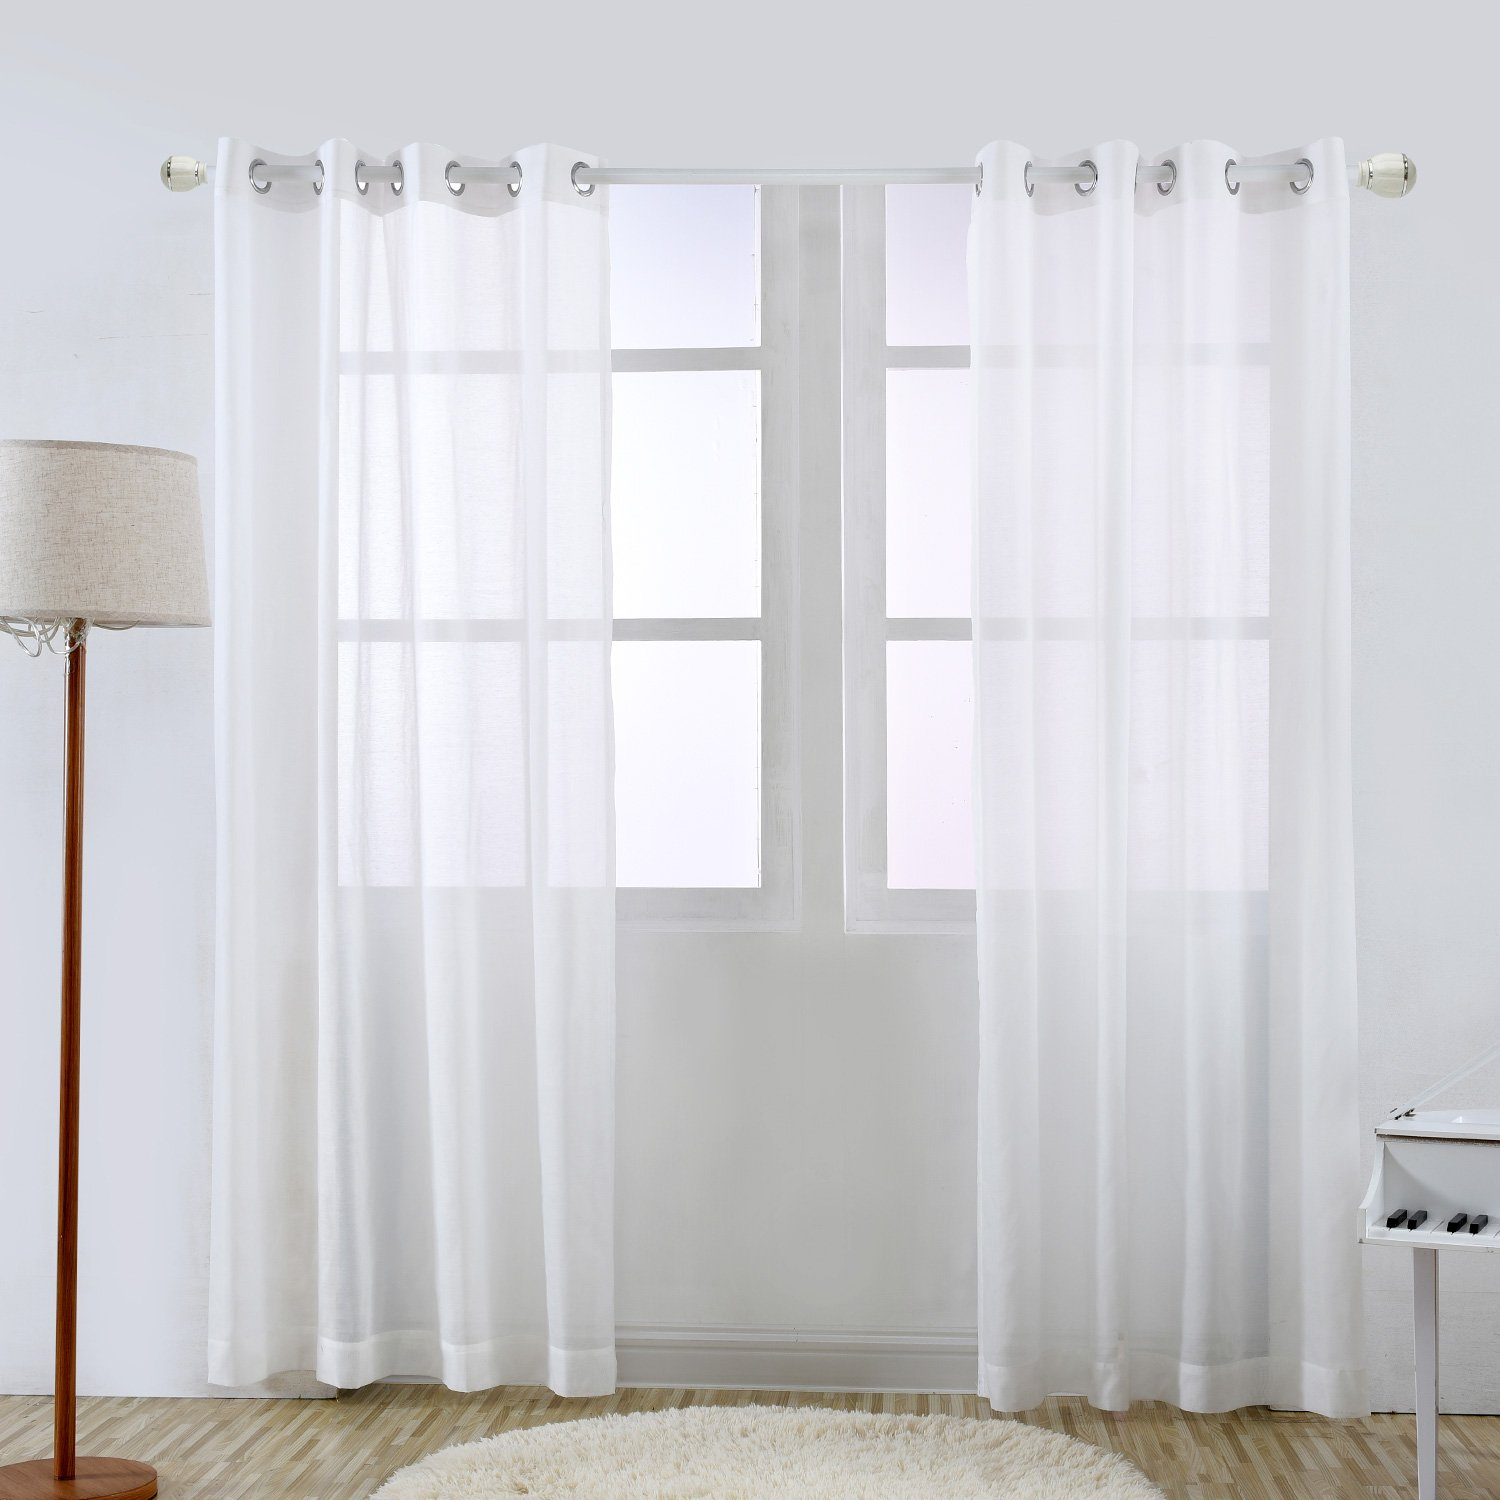 YOJA Sheer Window Curtain Voile Panels with Grommet Top Solid White